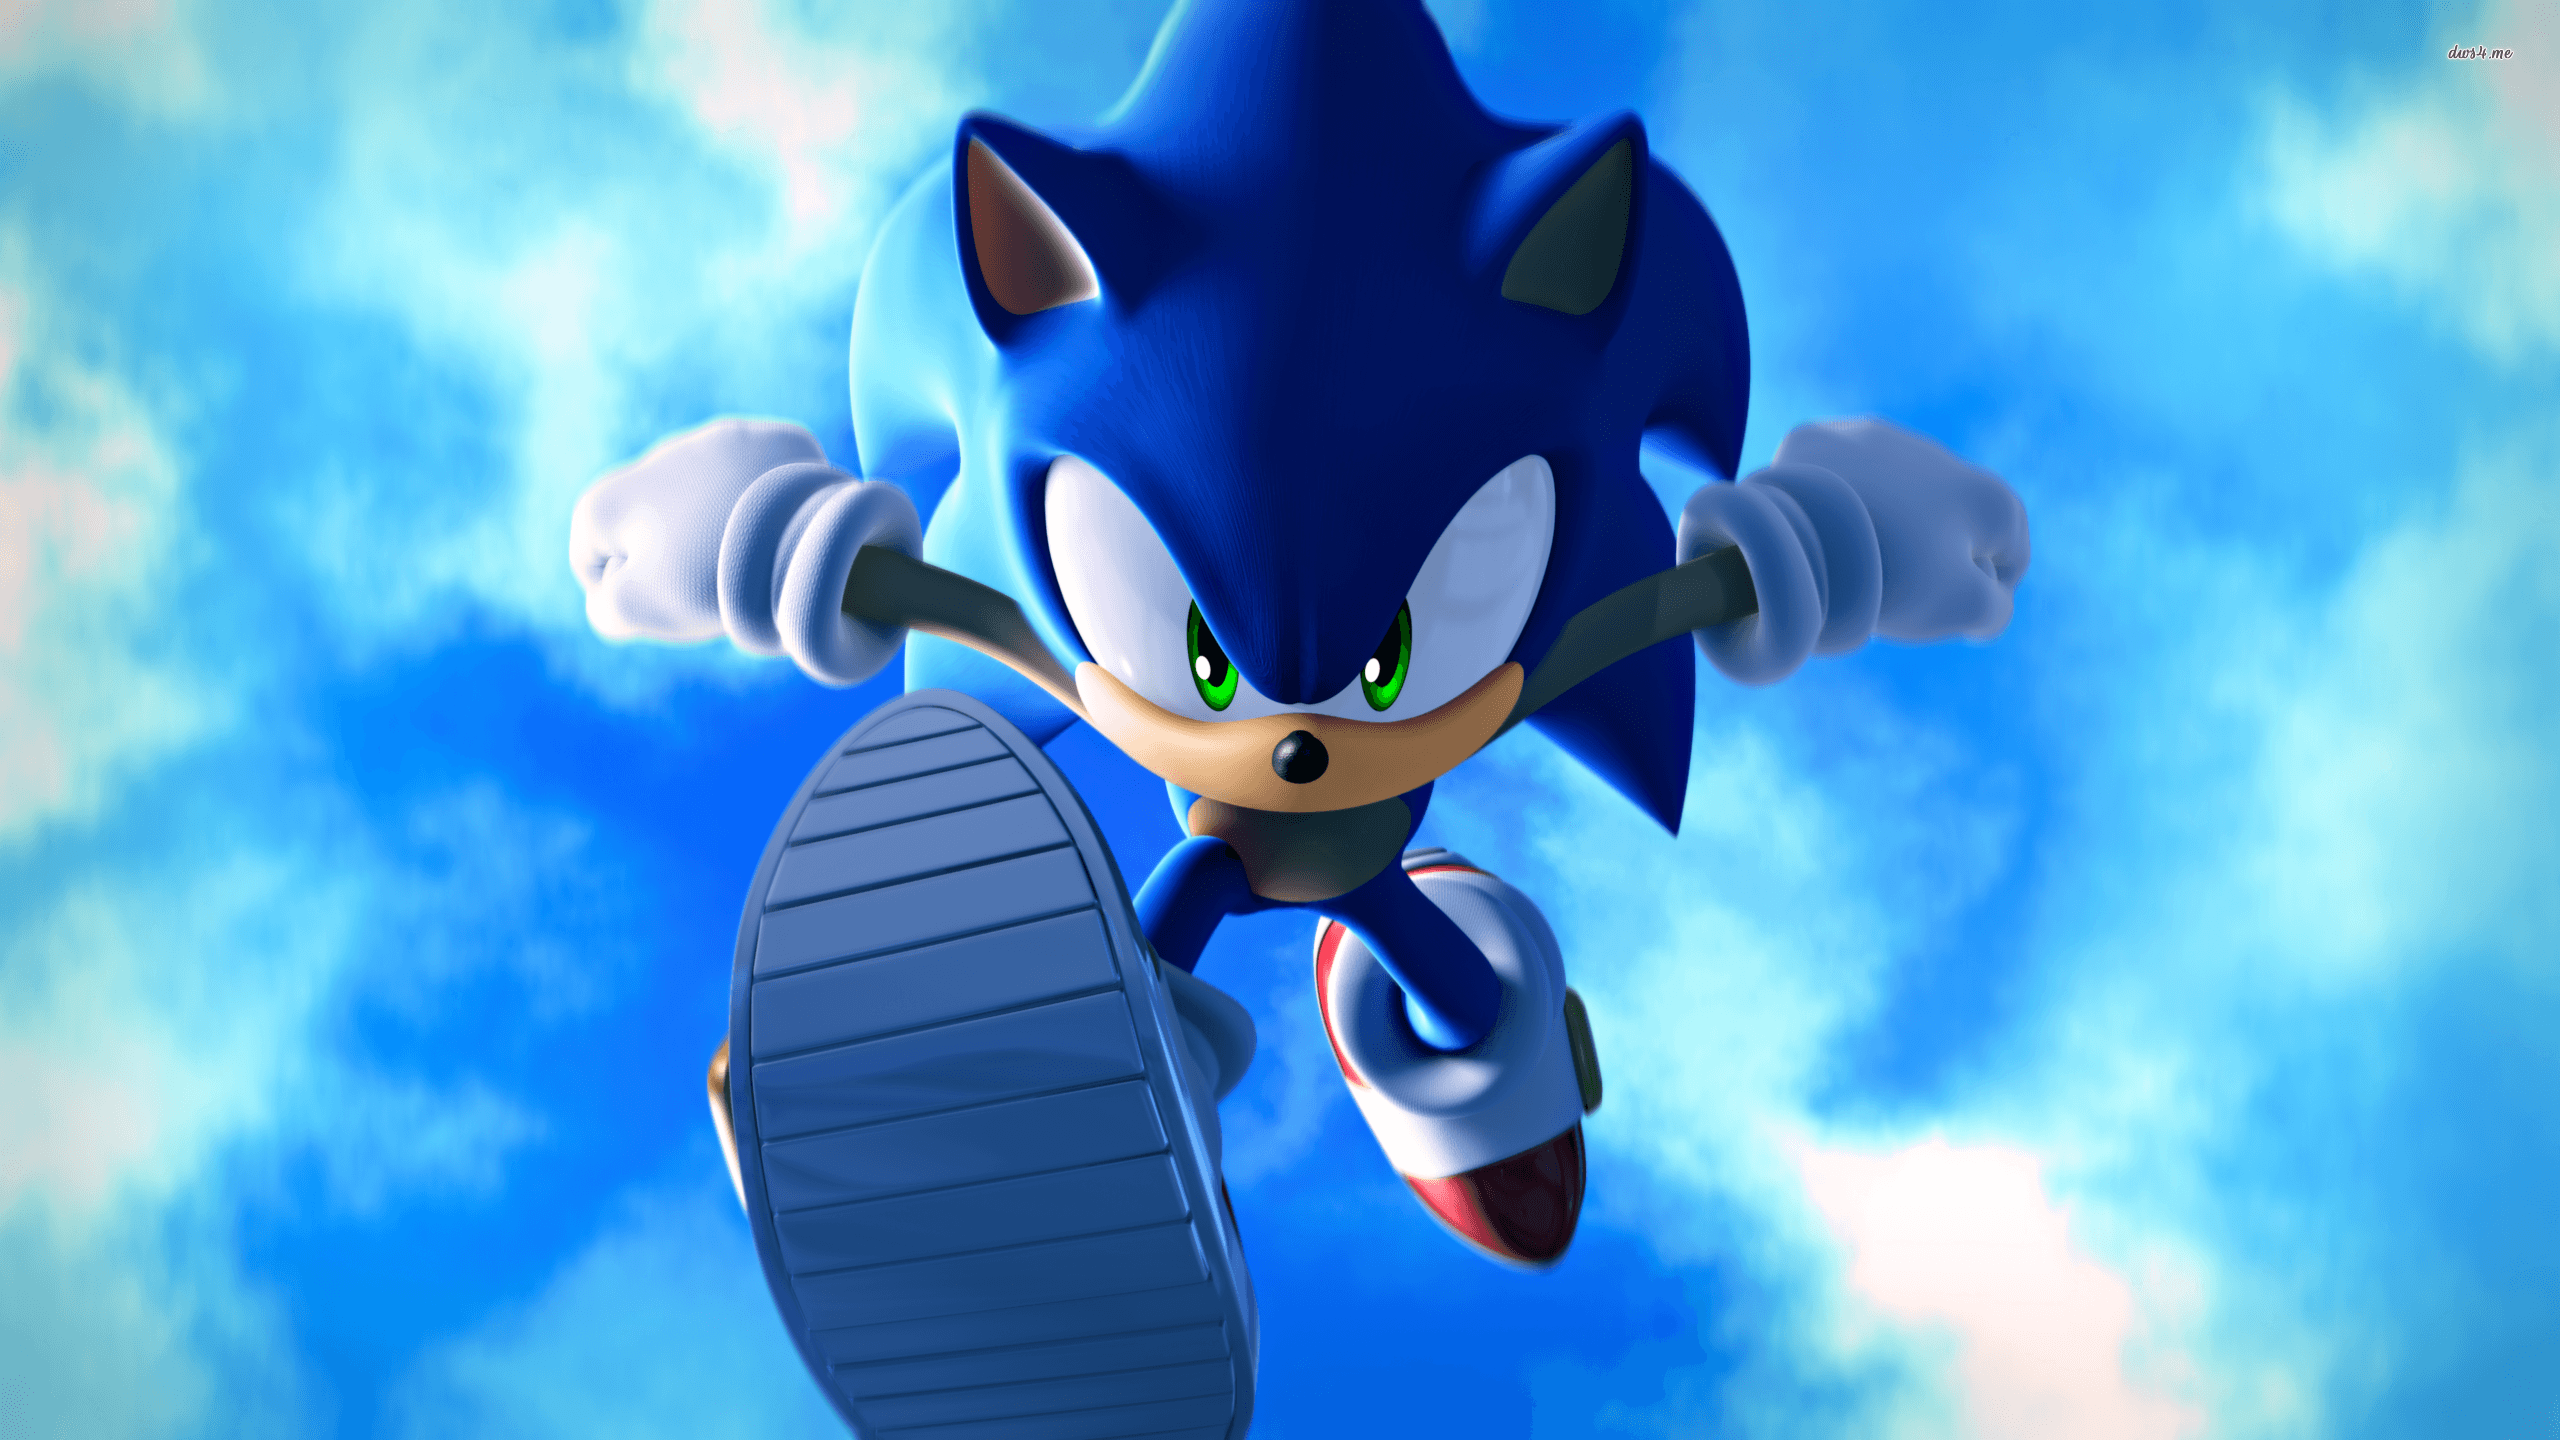 sonic background images